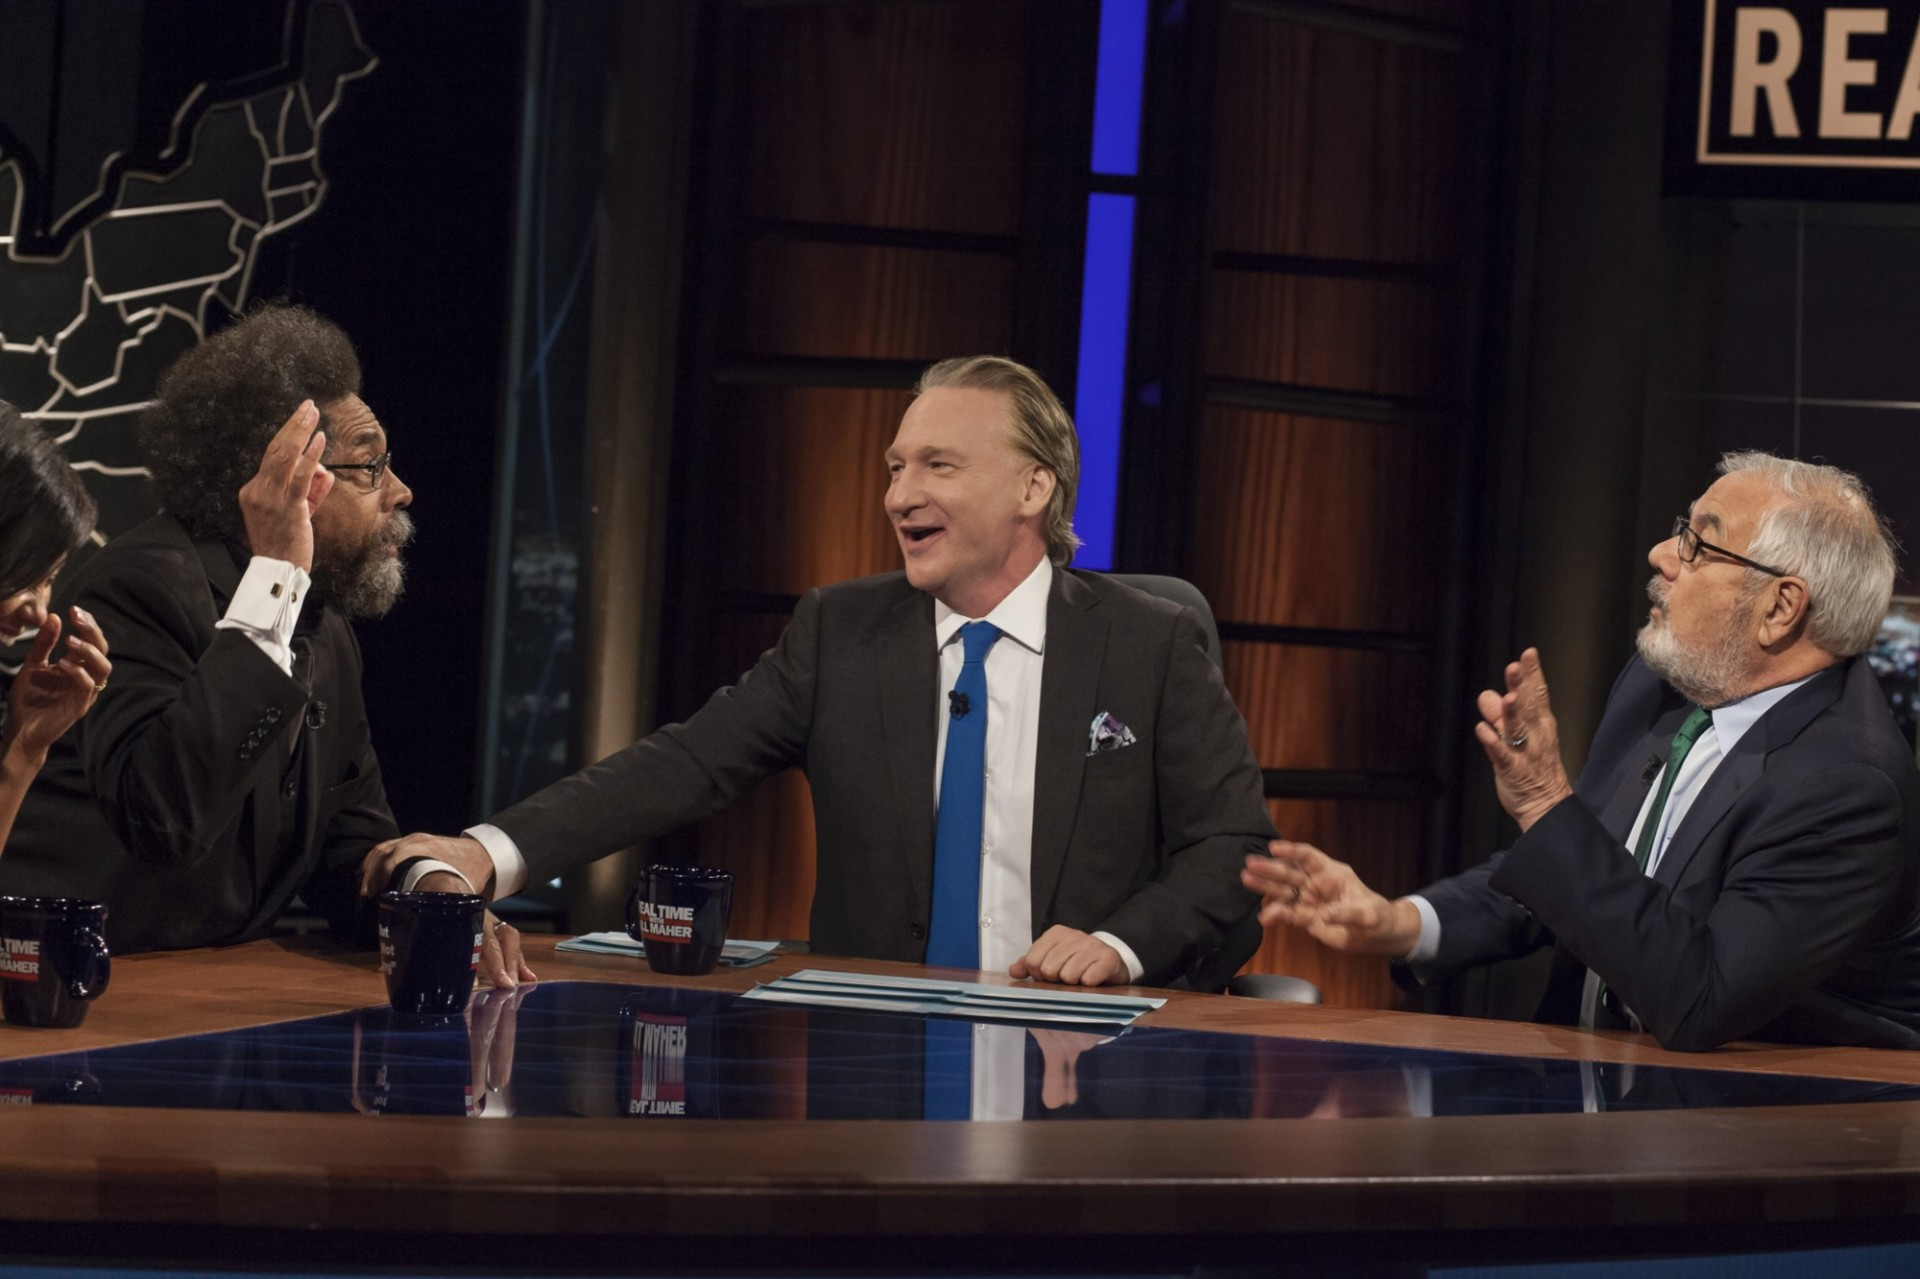 Cornel West brings heat to Bill Maher!